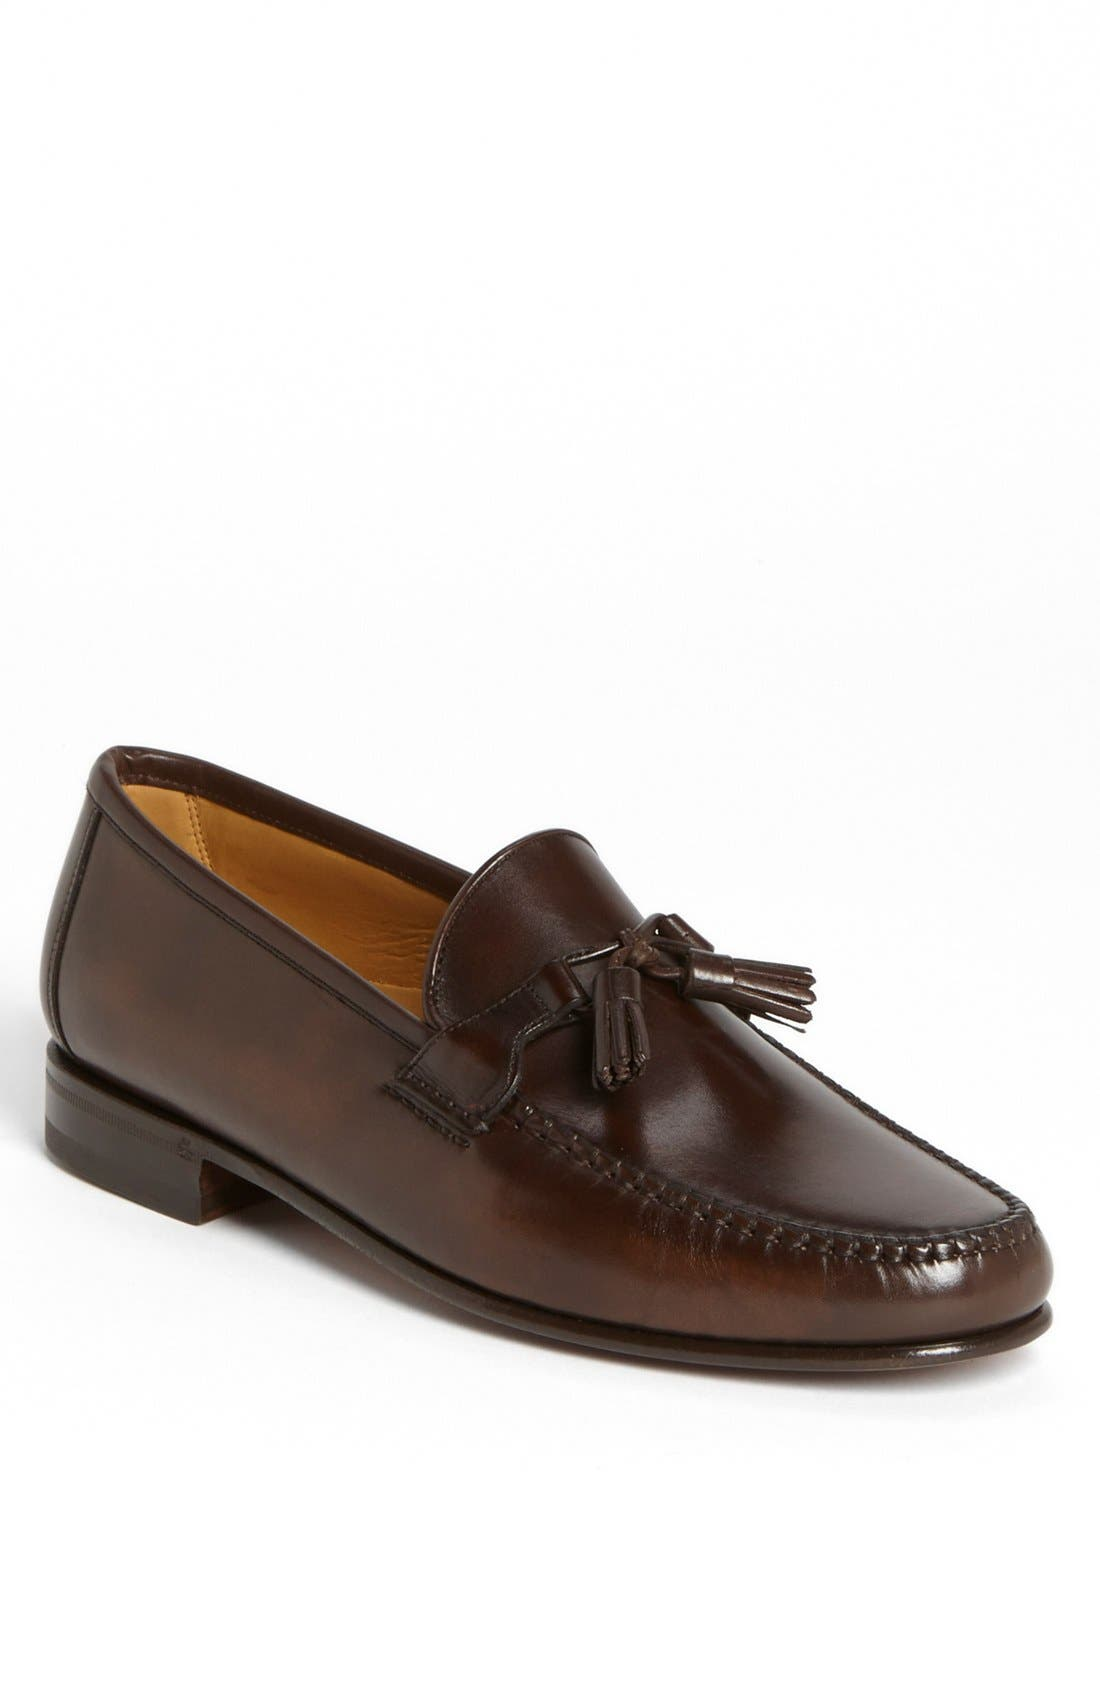 Alternate Image 1 Selected - Allen Edmonds 'Urbino' Tassel Loafer (Men)